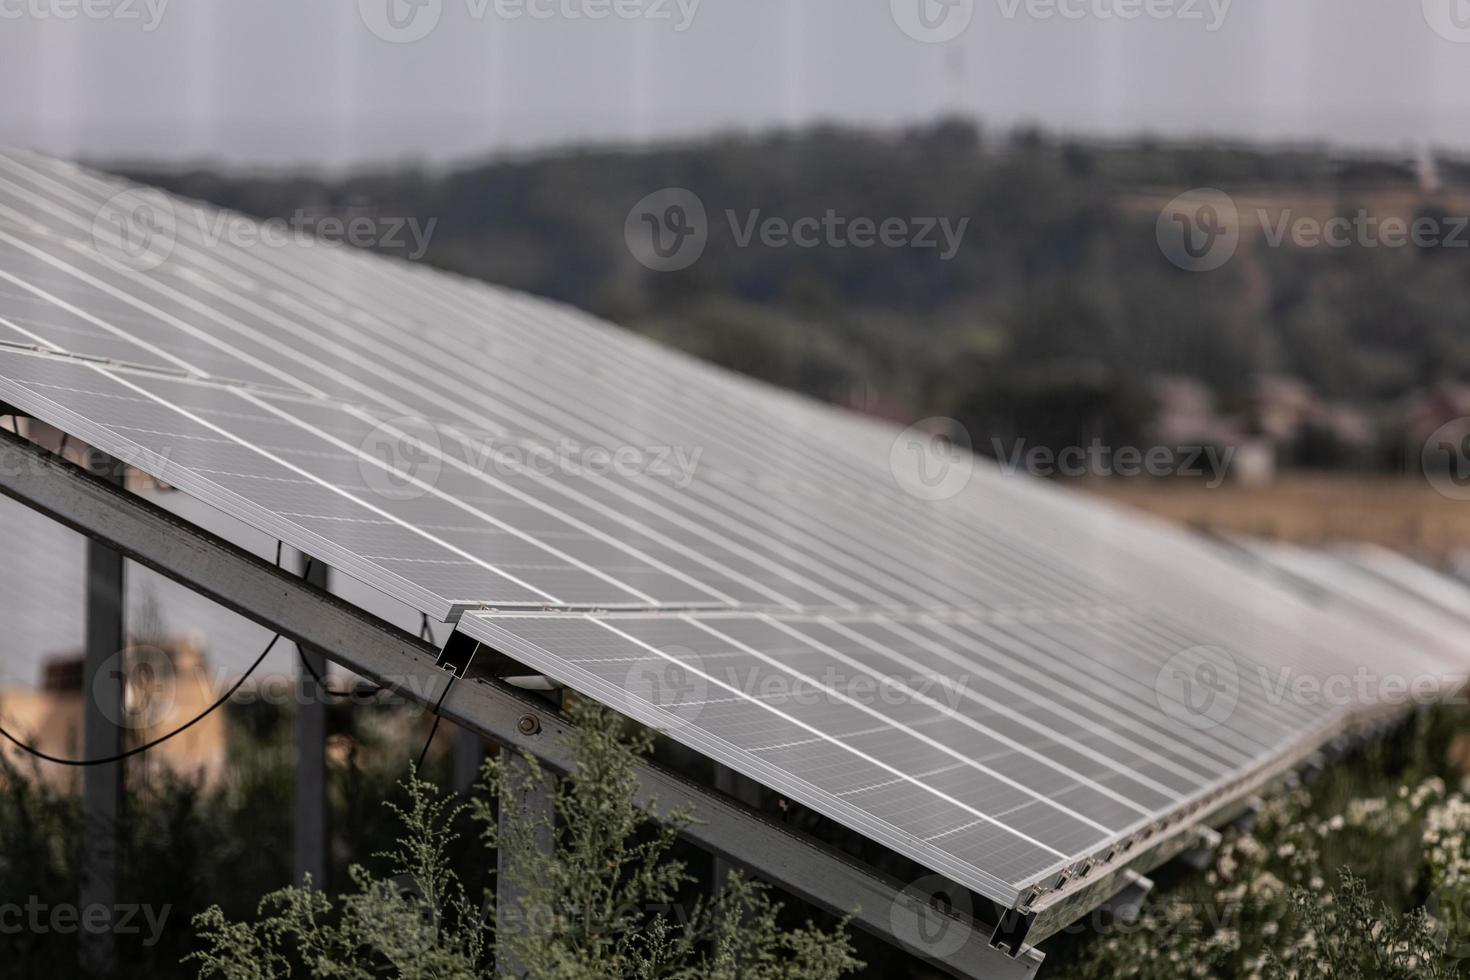 Solar panel, photovoltaic, alternative electricity source - concept of sustainable resources photo